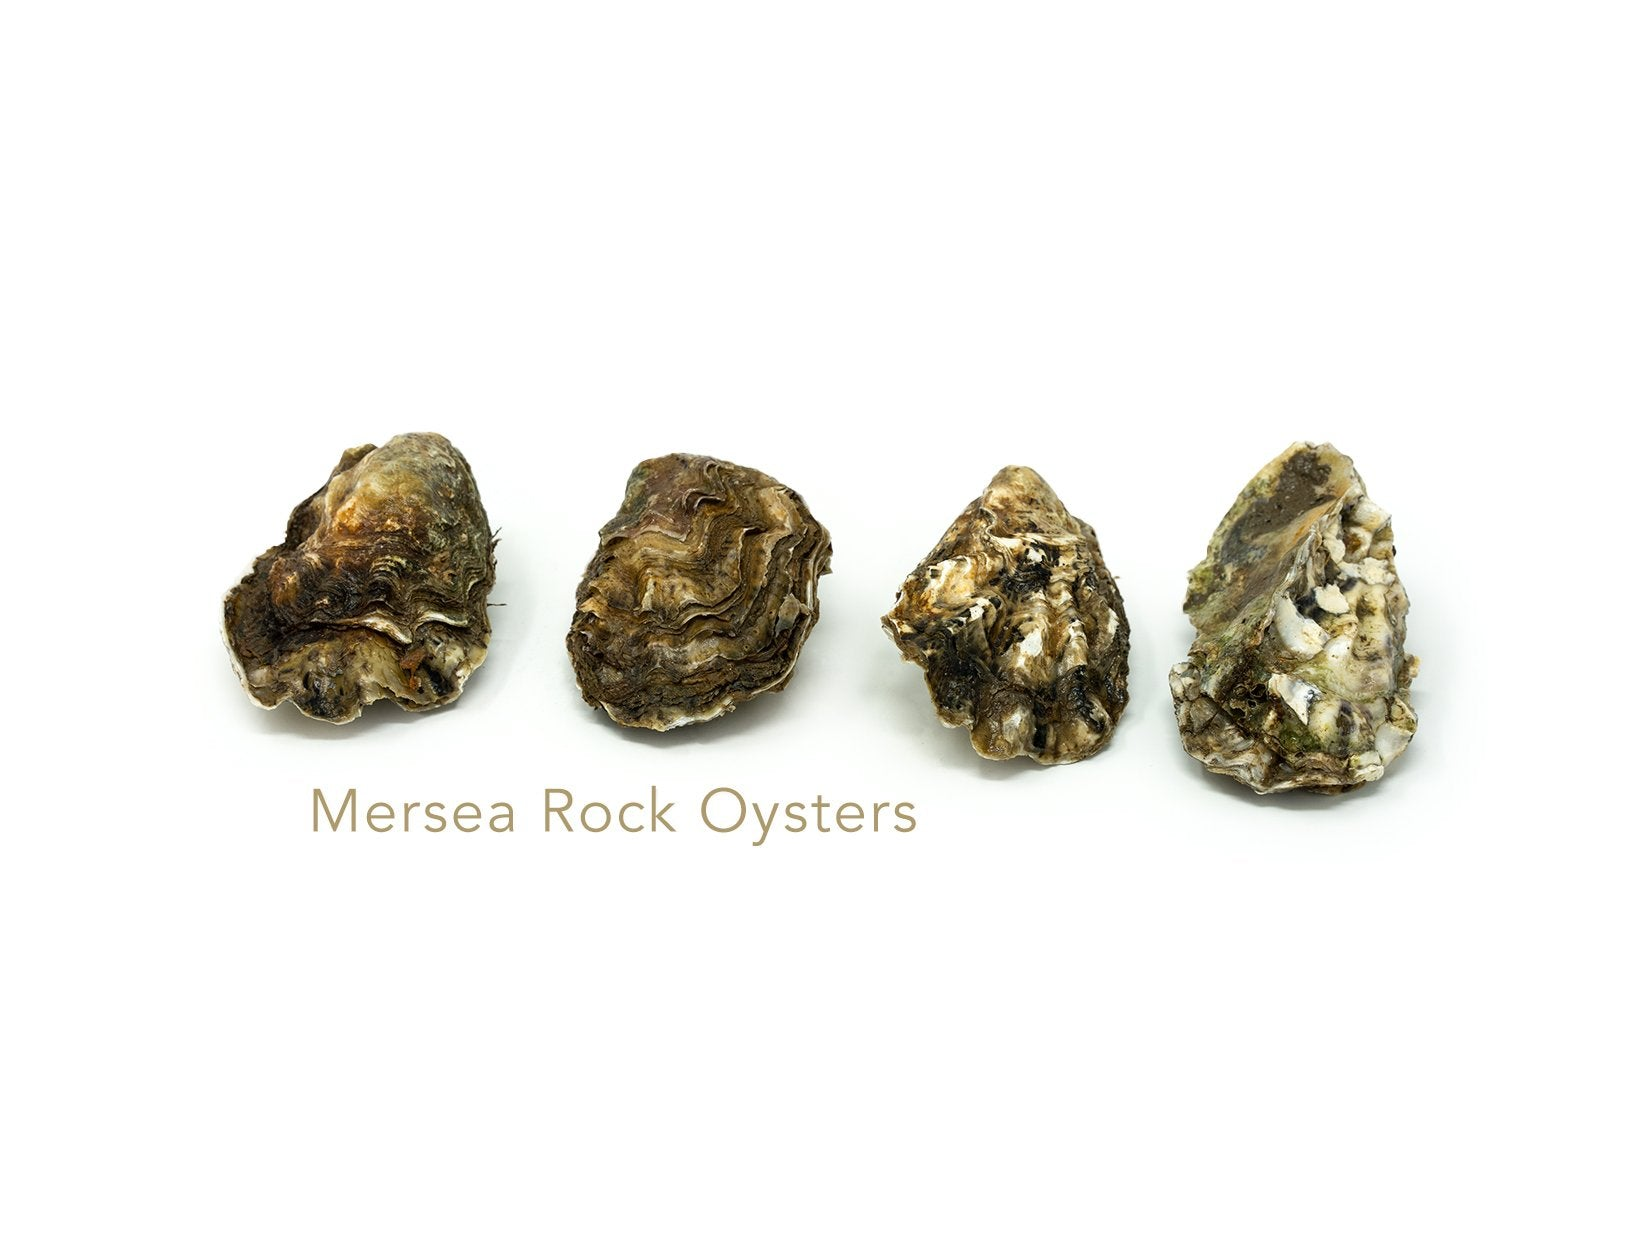 Oysters (Mersea) for sale - Parson's Nose